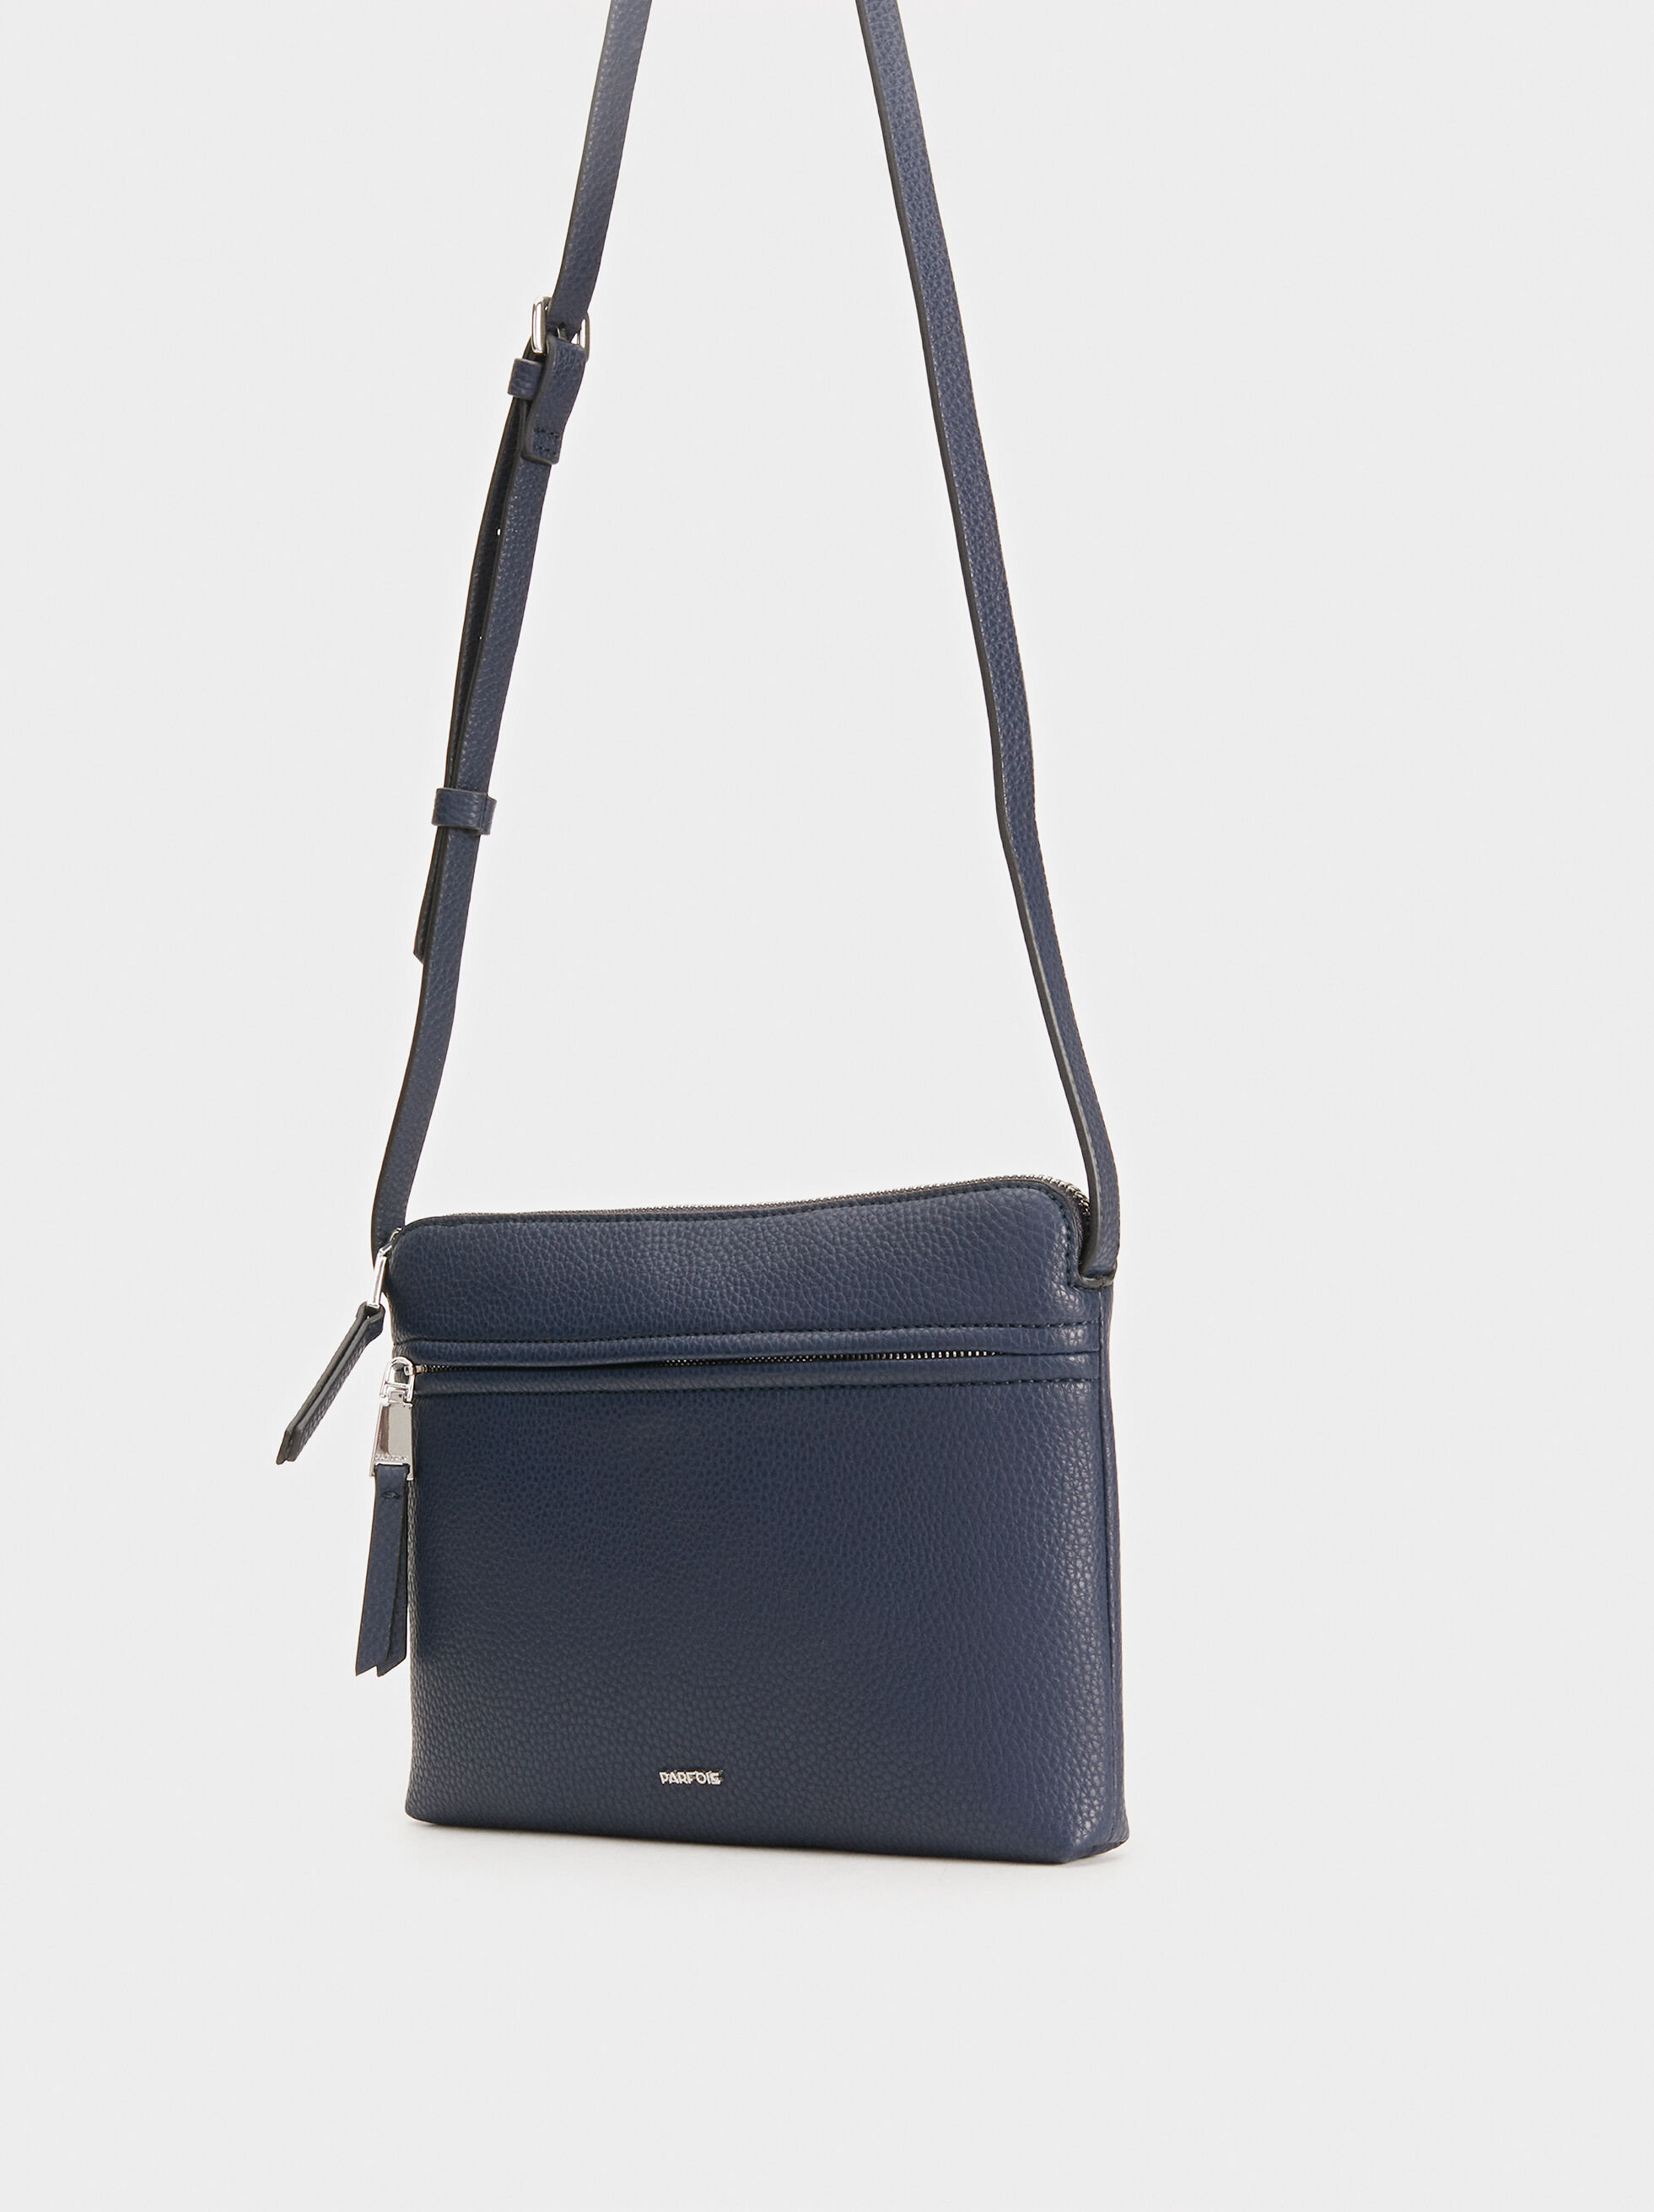 Crossbody Bag With Outer Pocket, Navy, hi-res